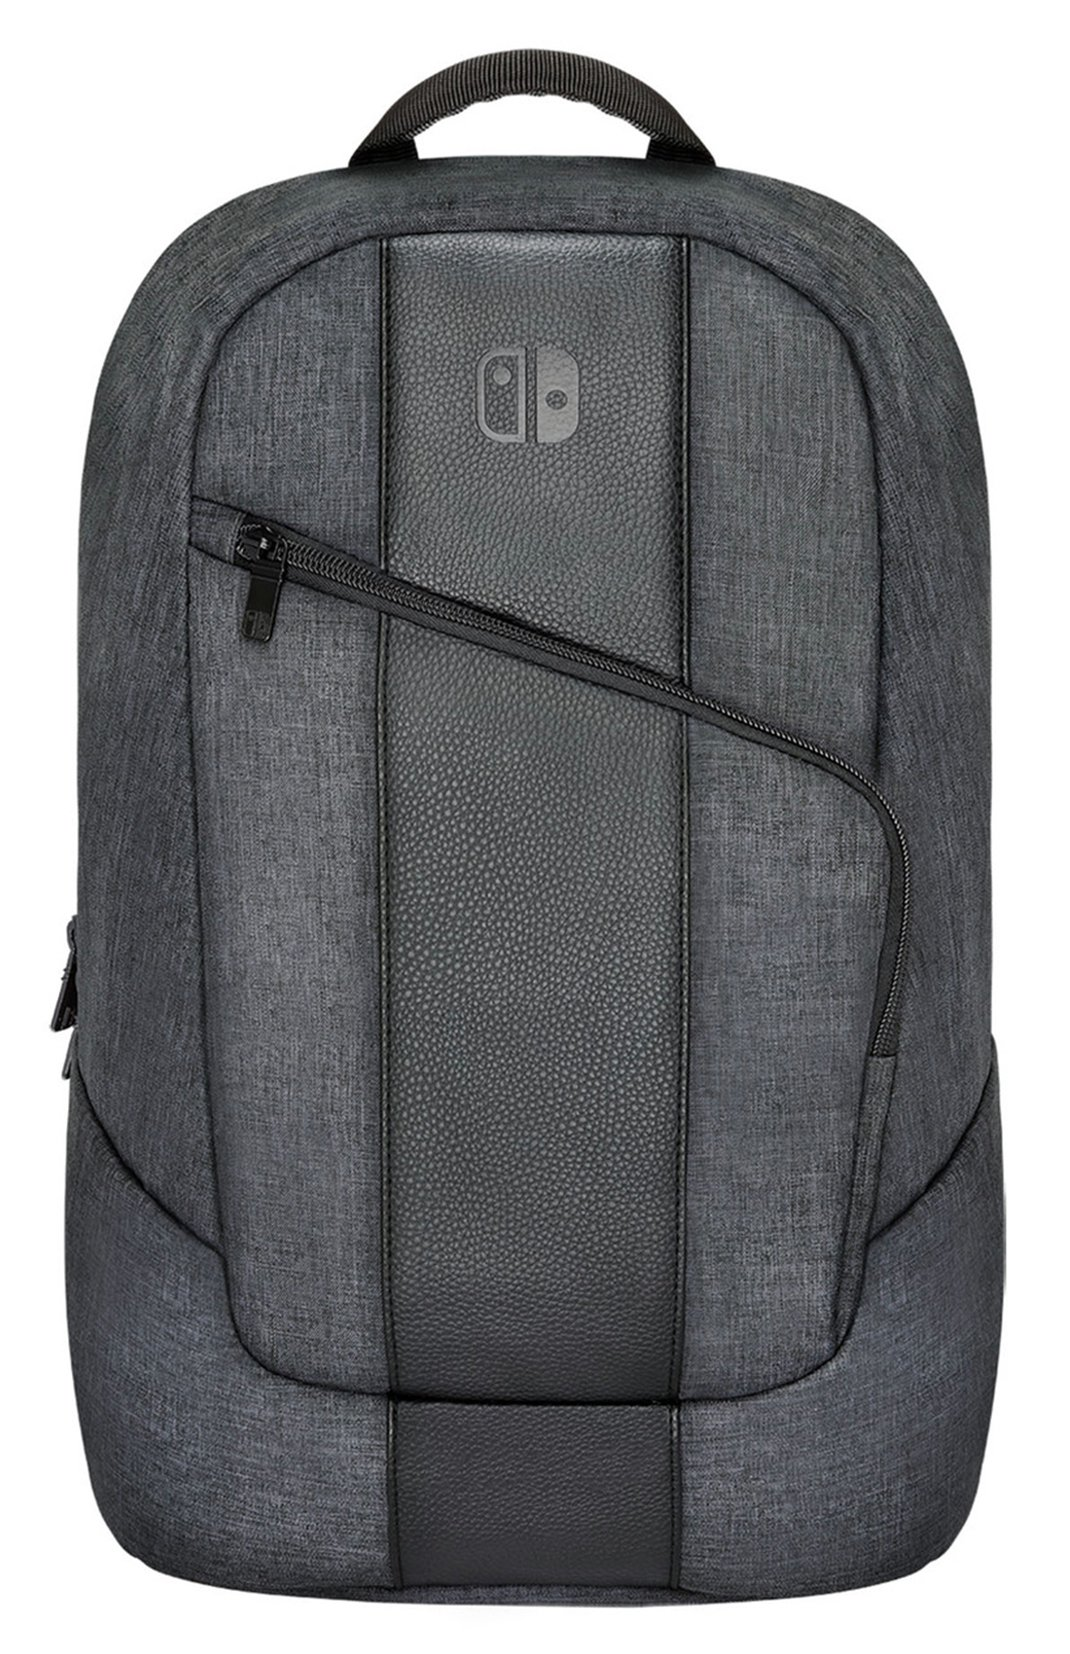 Nintendo Switch Elite Players Backpack from Nintendo Switch Elite Players Backpack